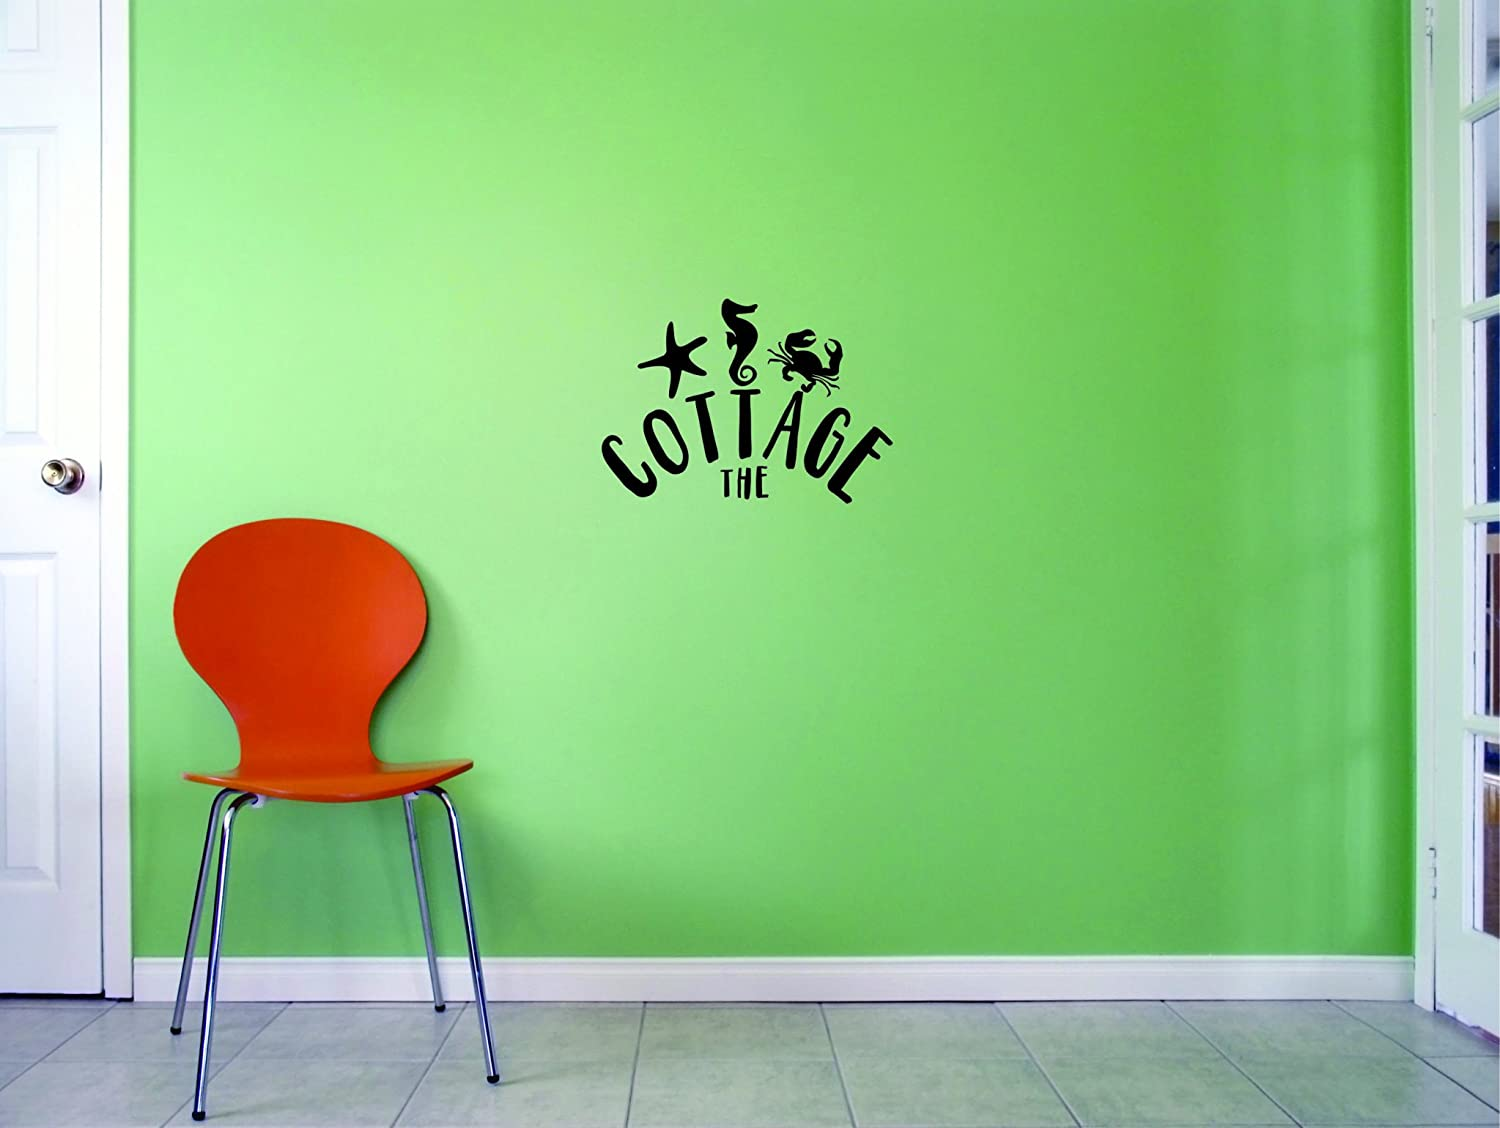 Design with Vinyl JER 2014 1 Hot New Decals The Cottage Wall Art Size: 12 Inches x 18 Inches Color: Black, 12' x 18'